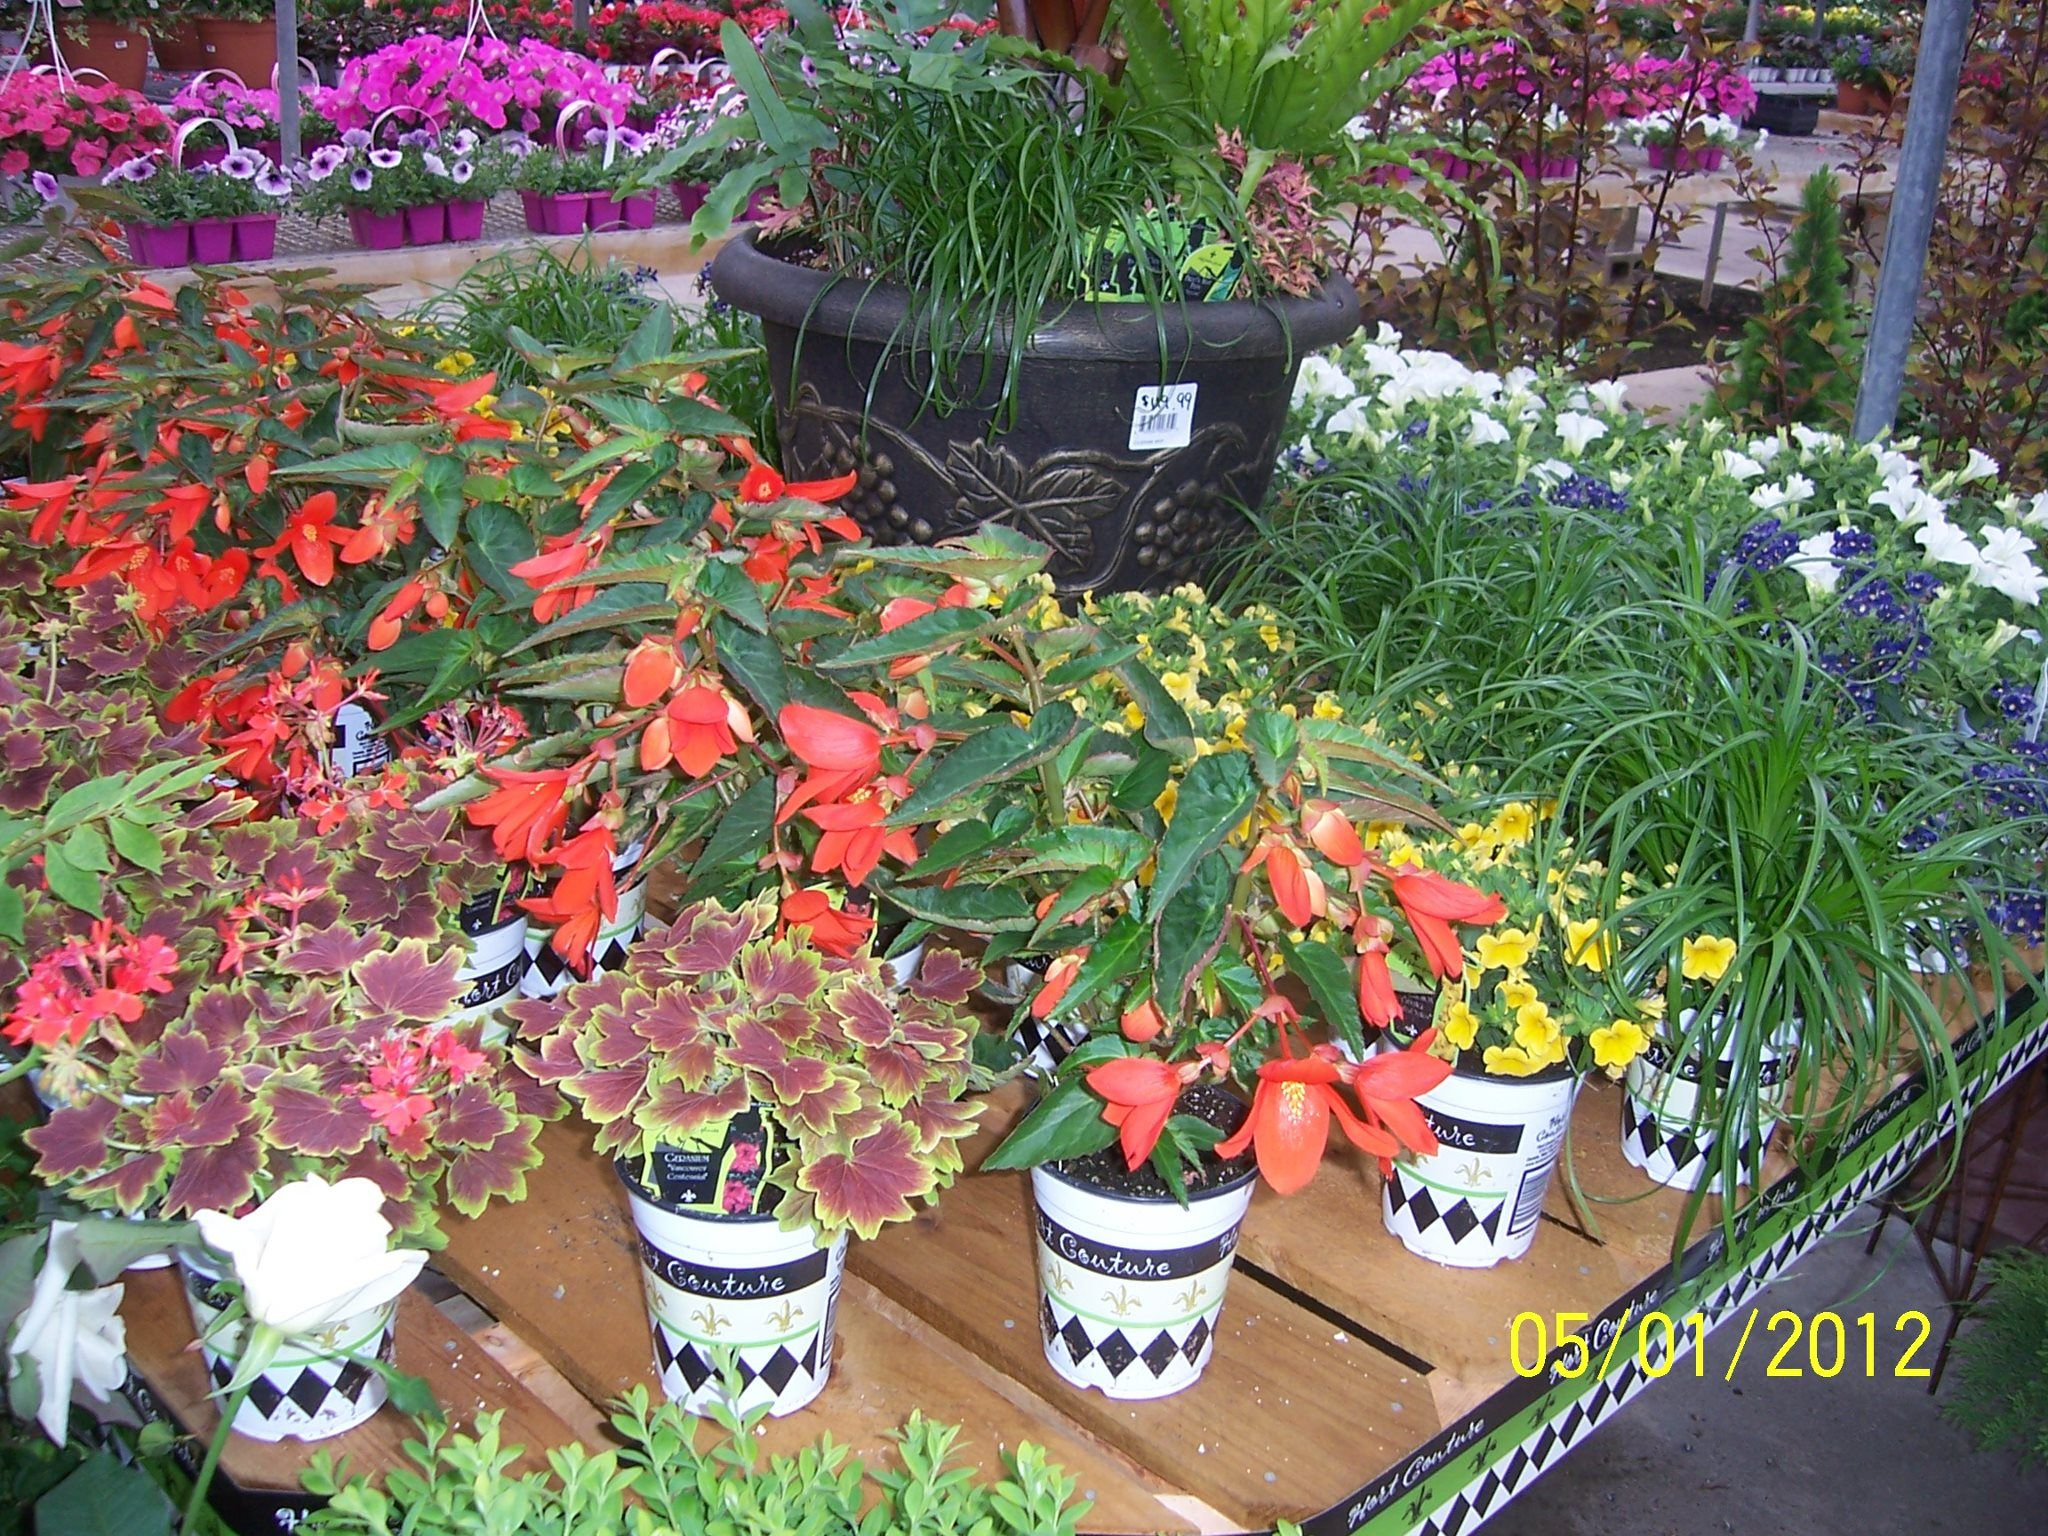 f7df3748683d7d0b5457a75262889bff - Kennedy's Country Gardens Scituate Ma